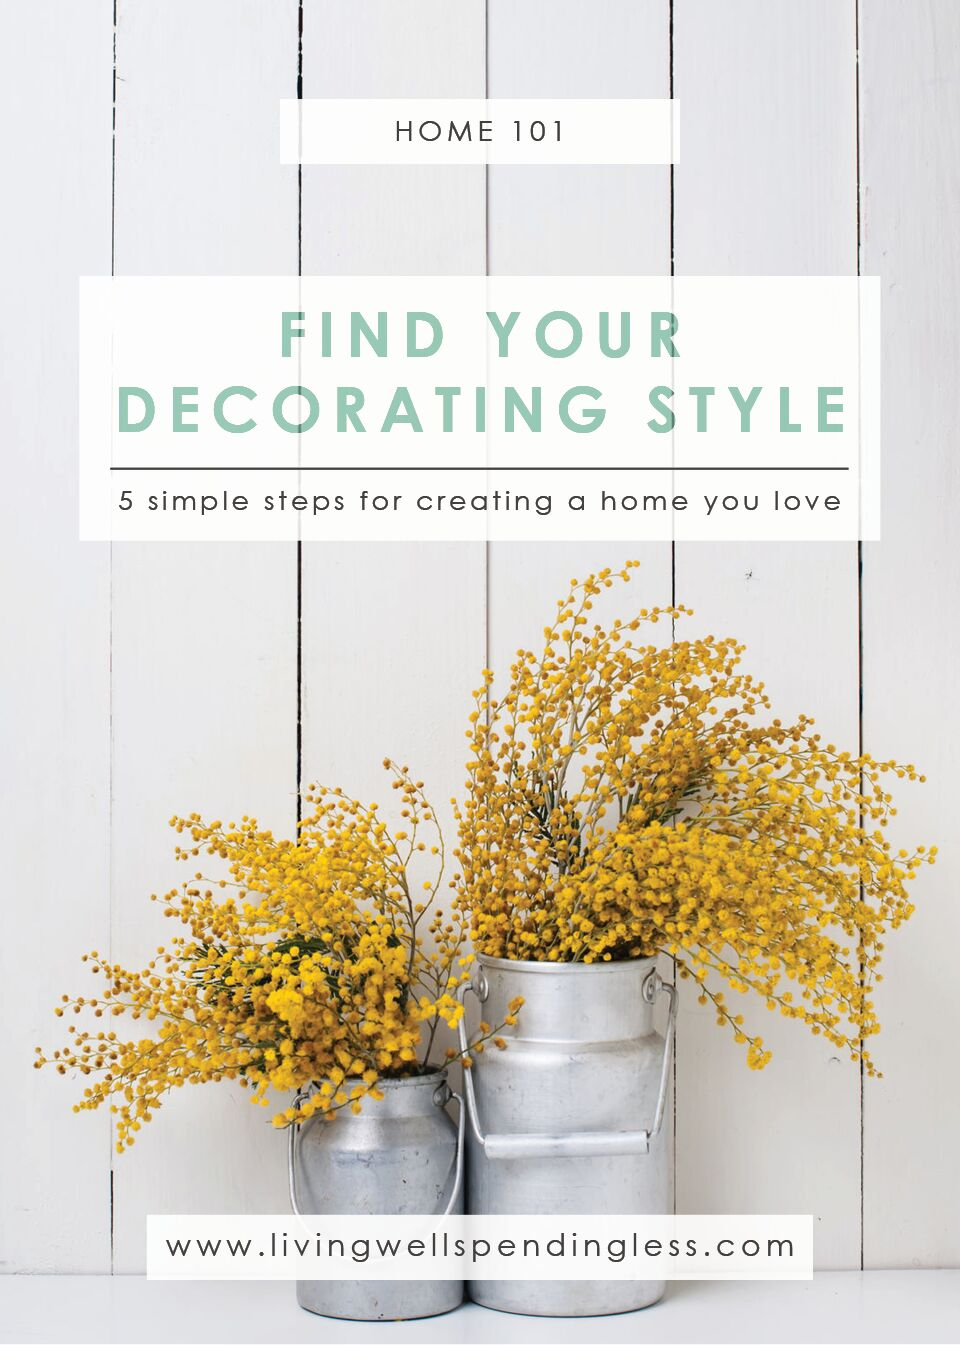 How to find your decorating style - 5 Steps For Finding Your Decorating Style Home Decorating Diy Home Decor